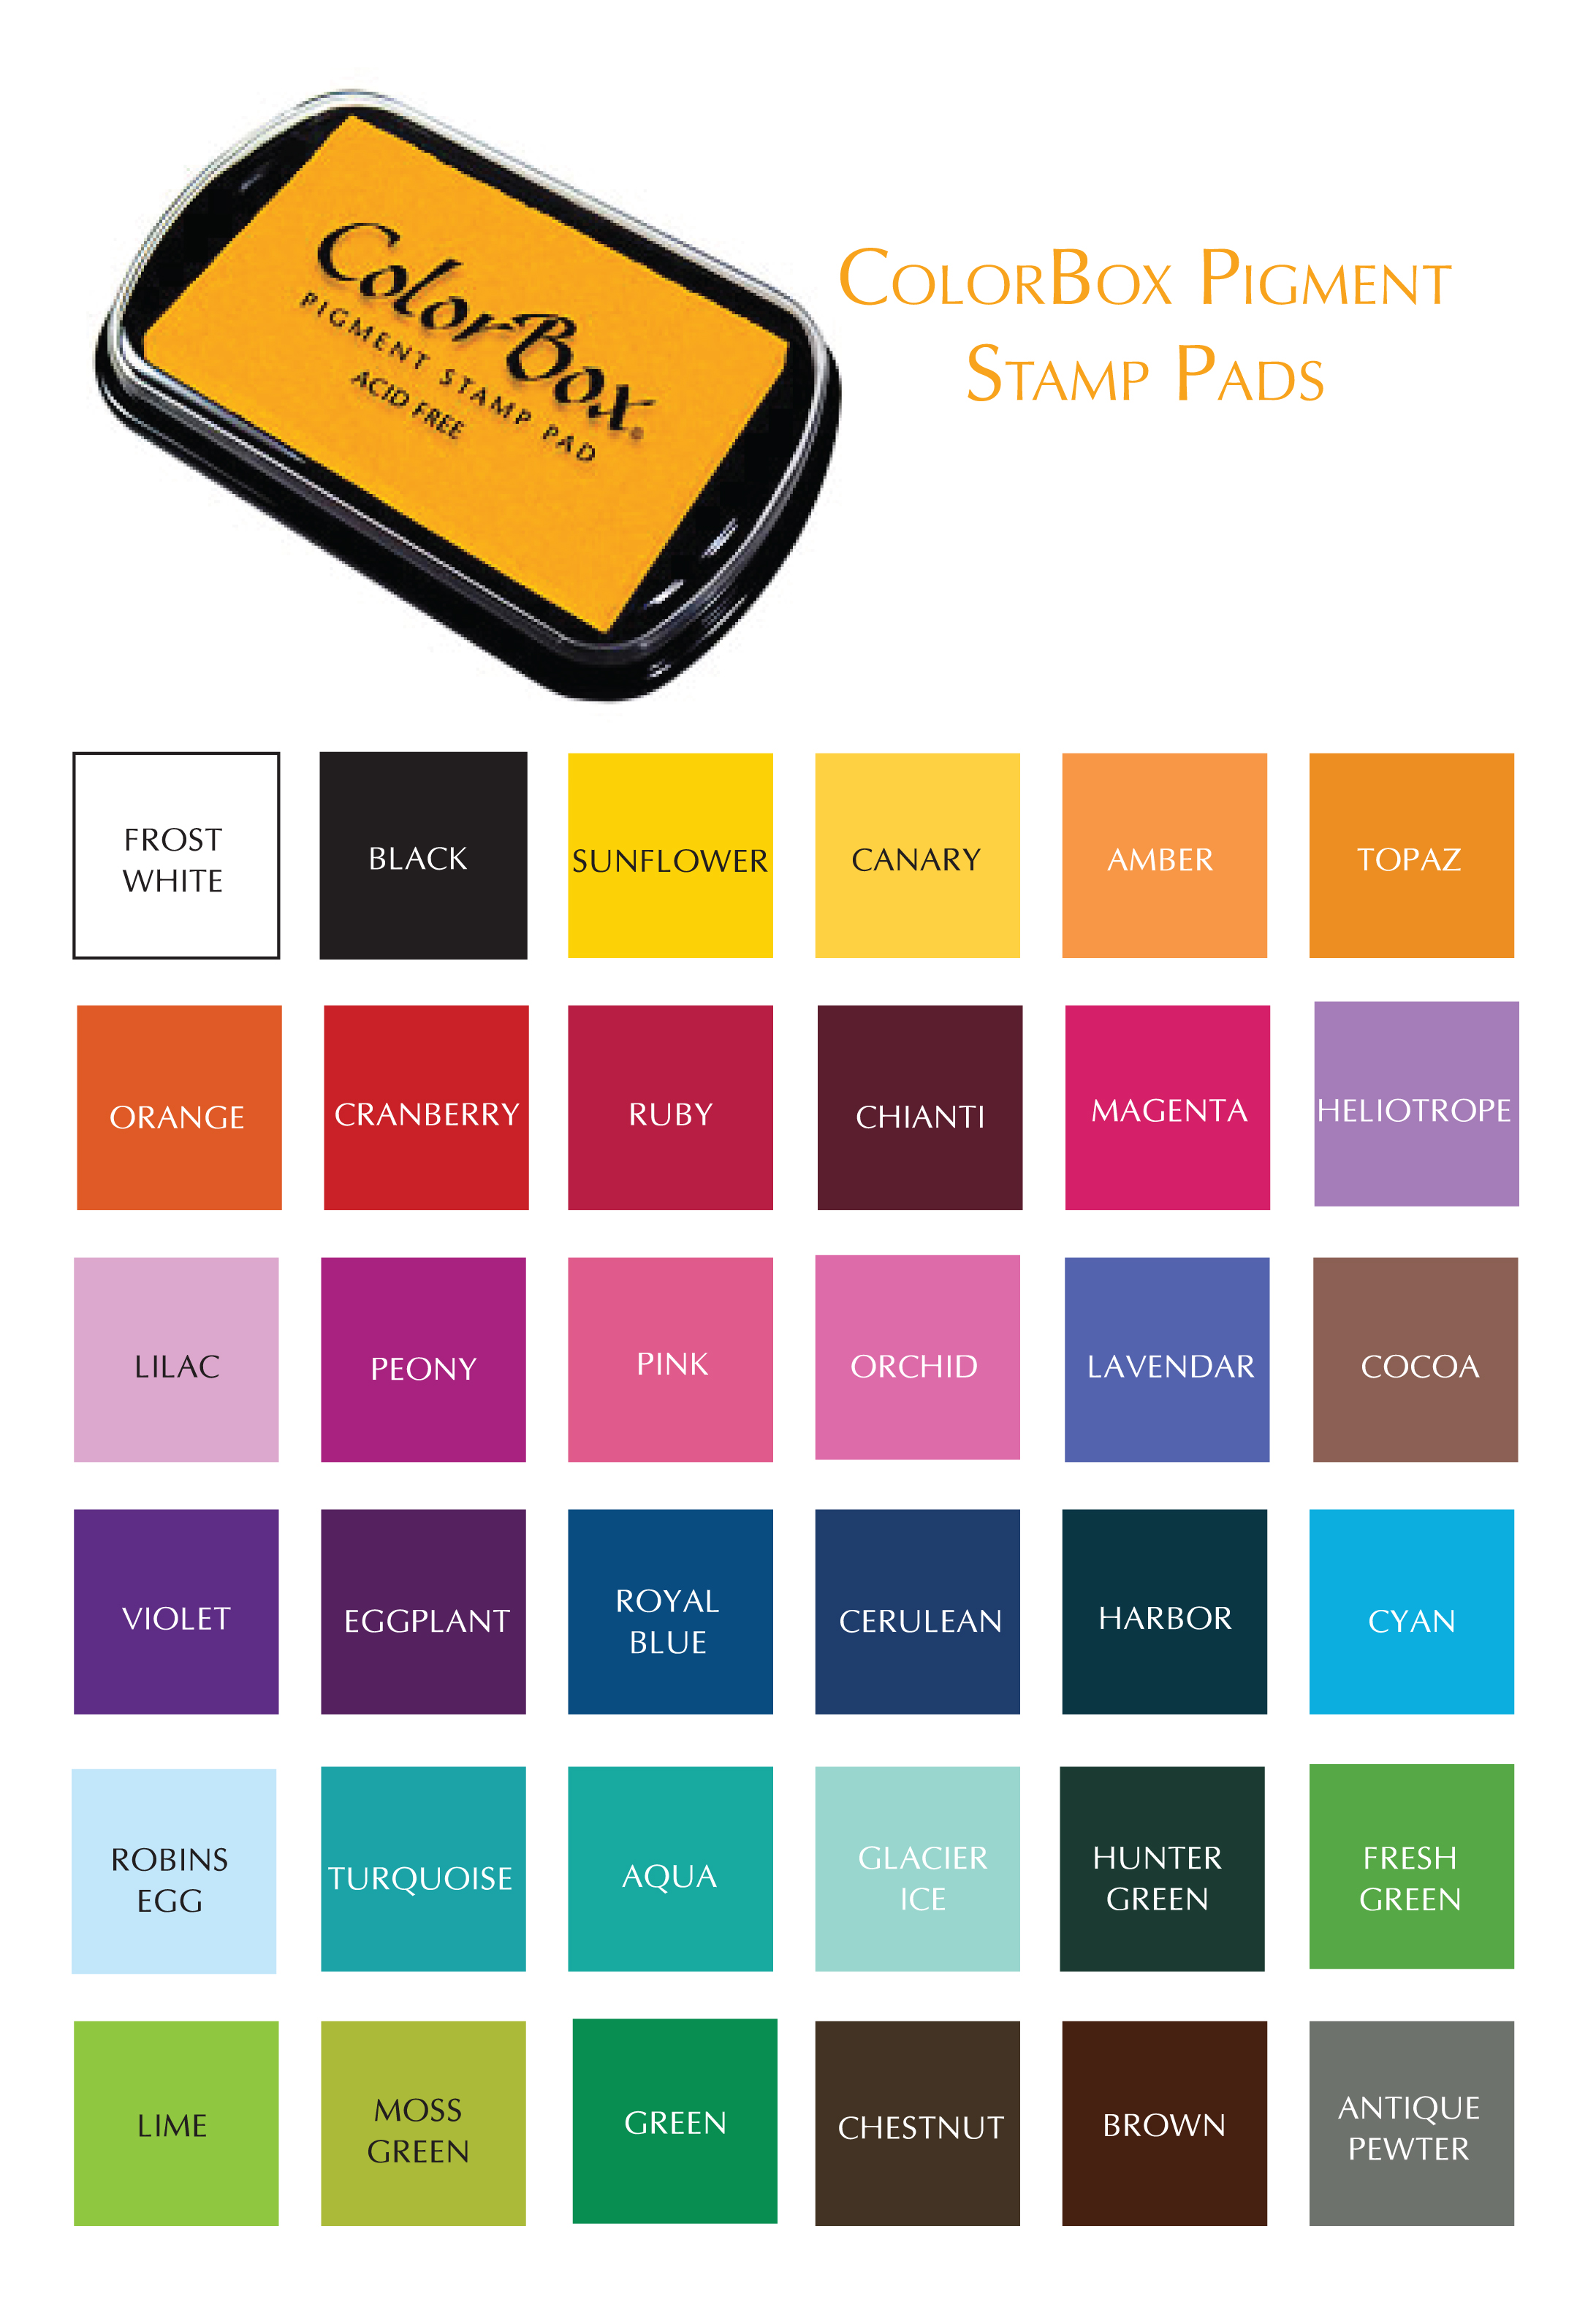 Color Box Pigment Stamp Pad · AngeliqueInk · Online Store Powered by ...